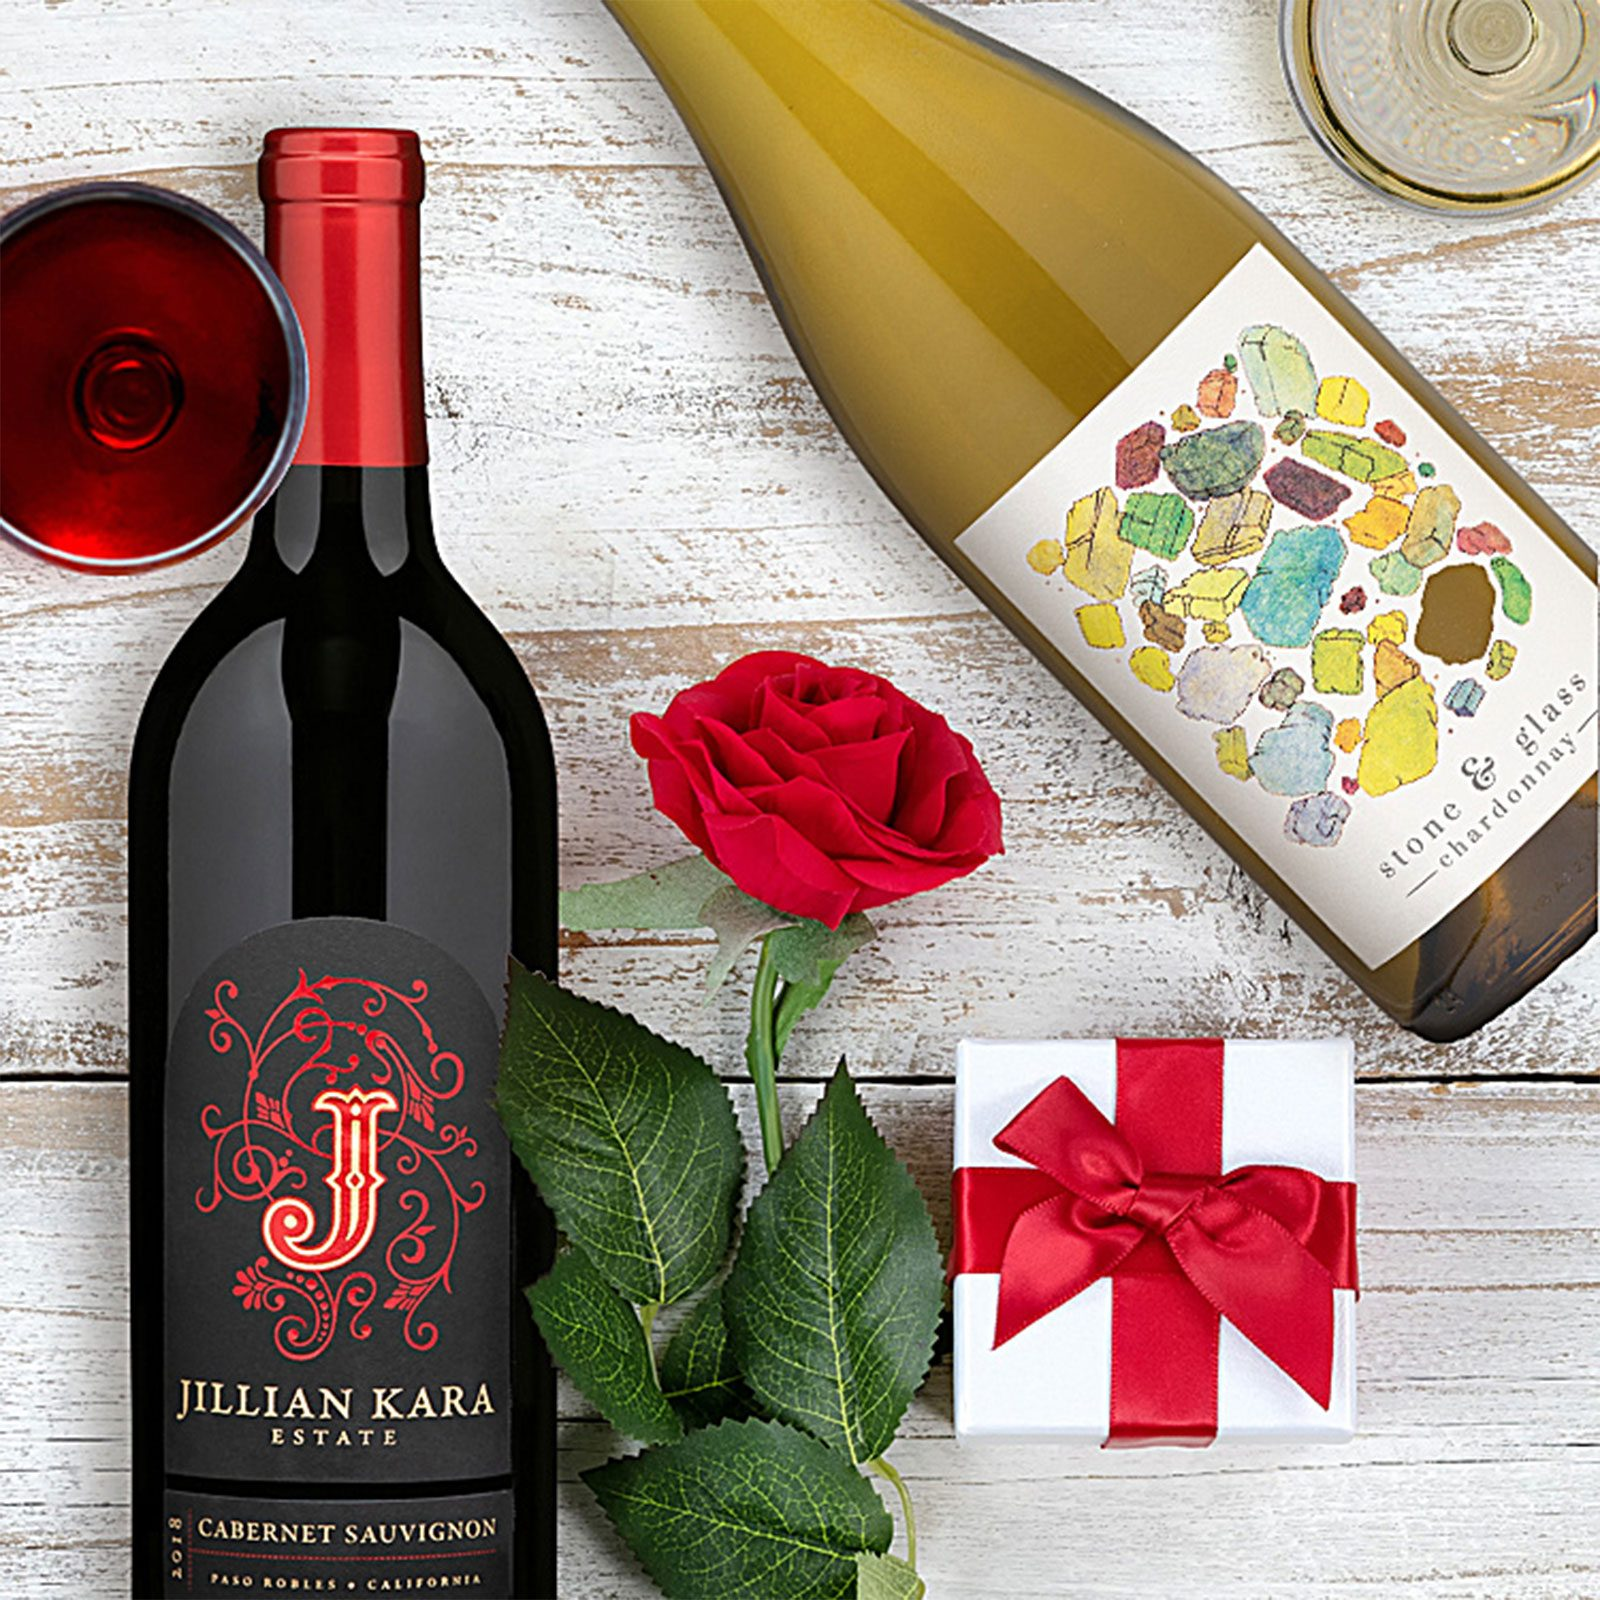 For date nights at home: Wine Insiders Date Night Stunners Wines